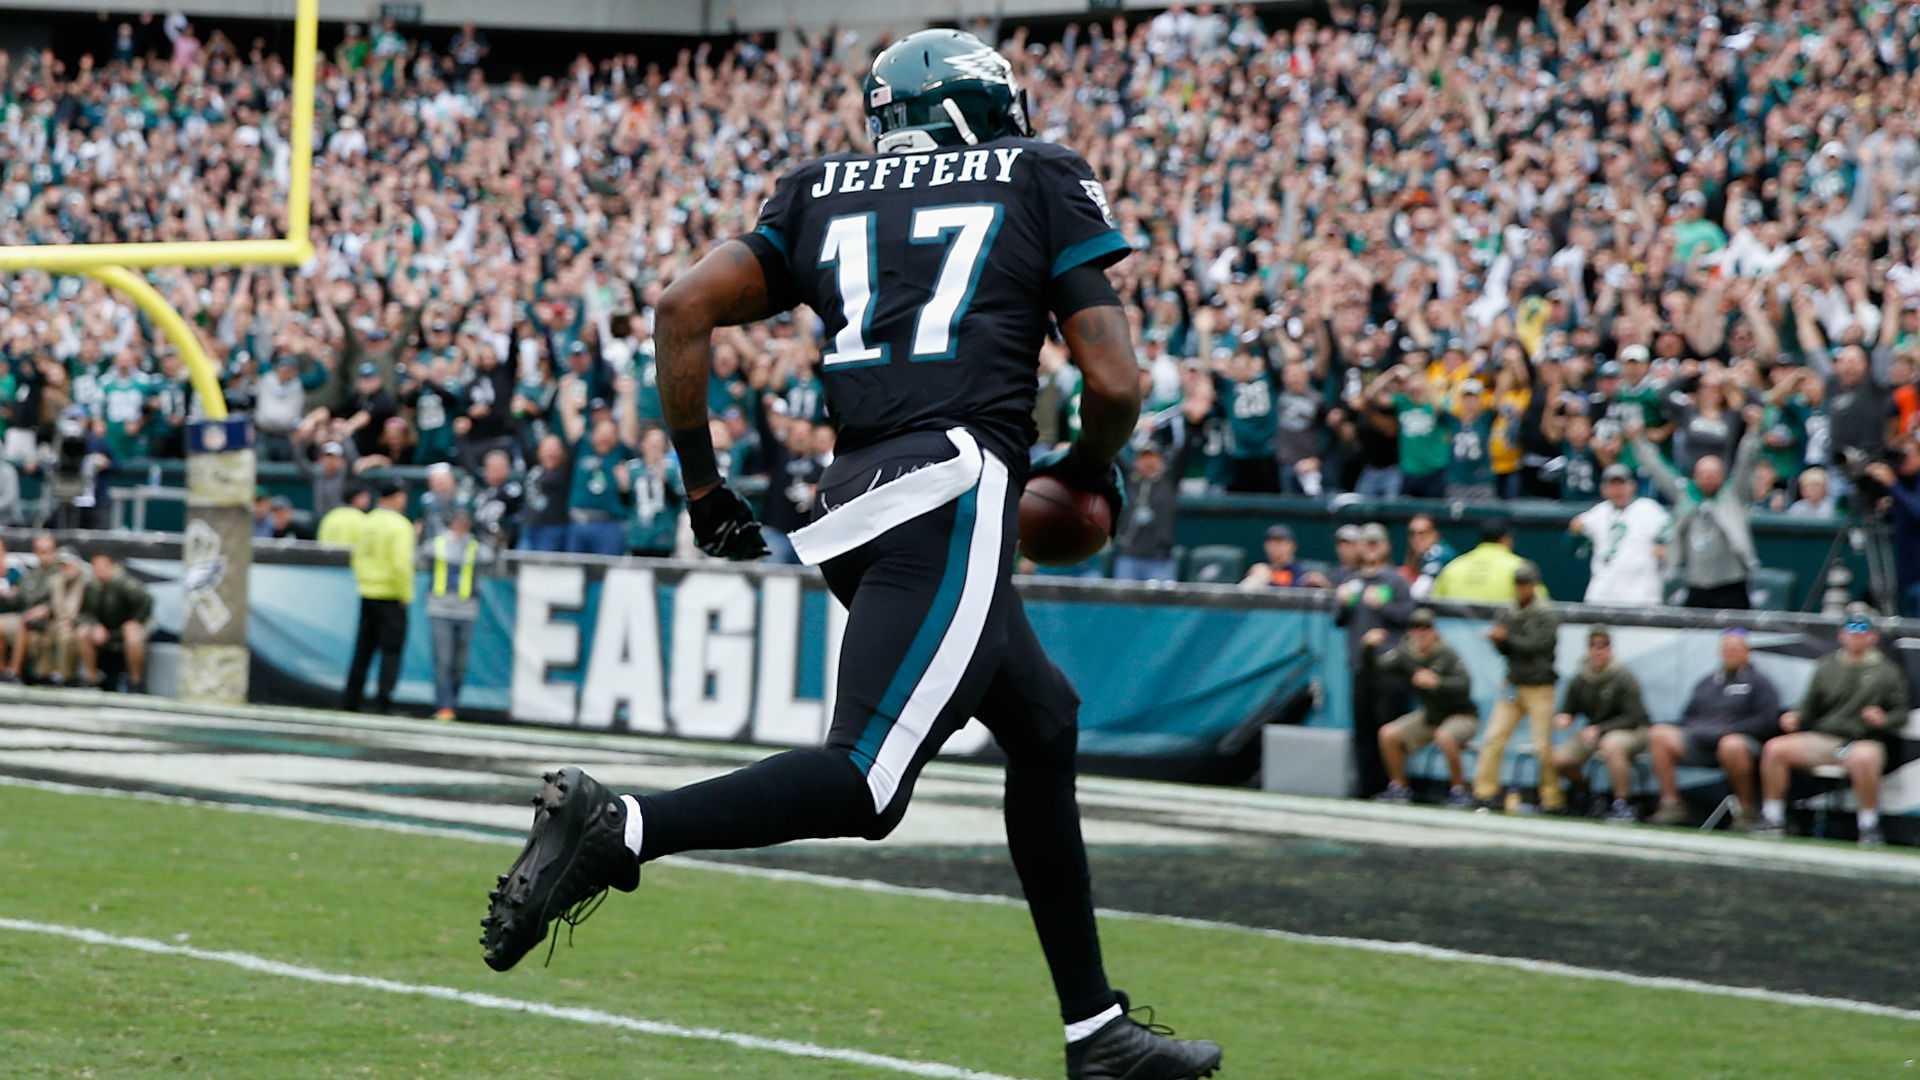 Eagles sign WR Alshon Jeffery to 4-year, $52 million contract extension